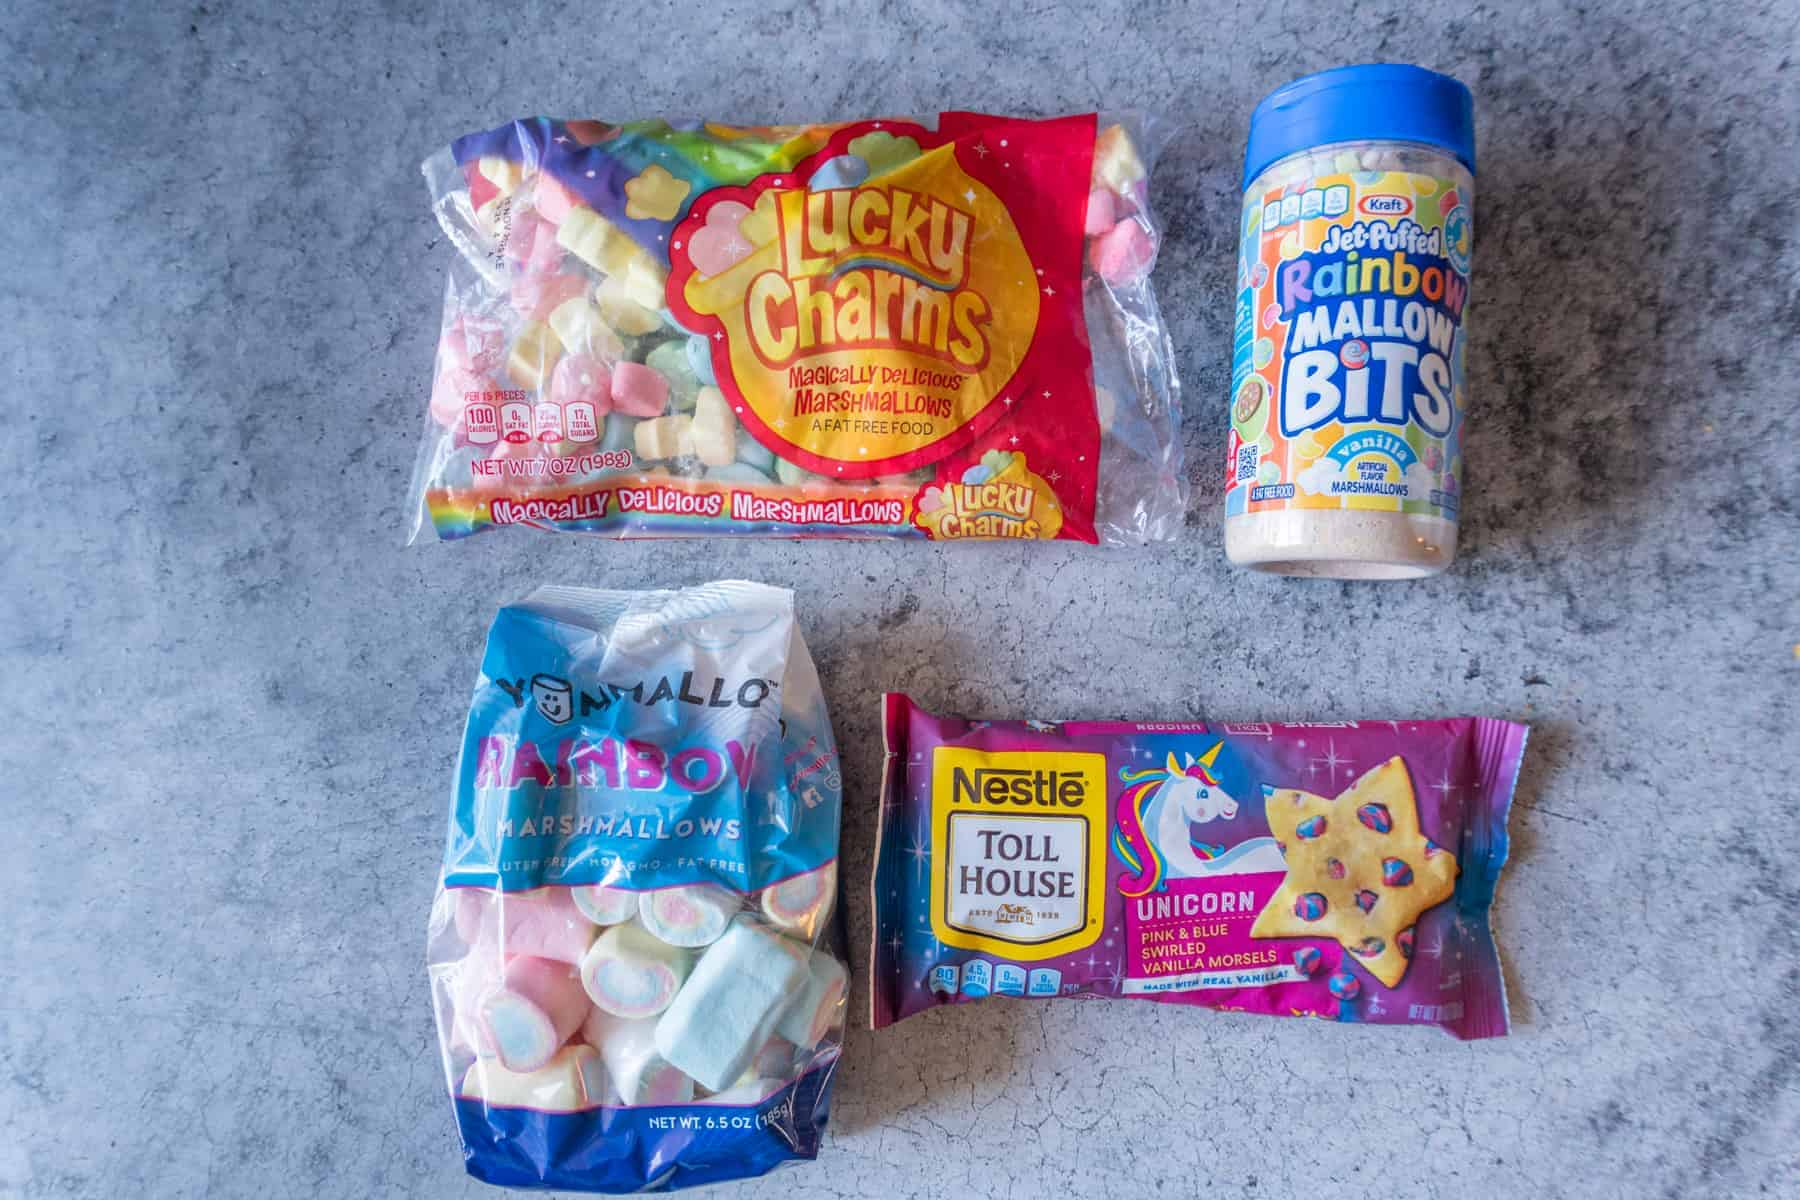 Lucky Charms Marshmallow Bits, Lucky Charms Large Marshmallows, Rainbow Marshmallows, Unicorn Chips